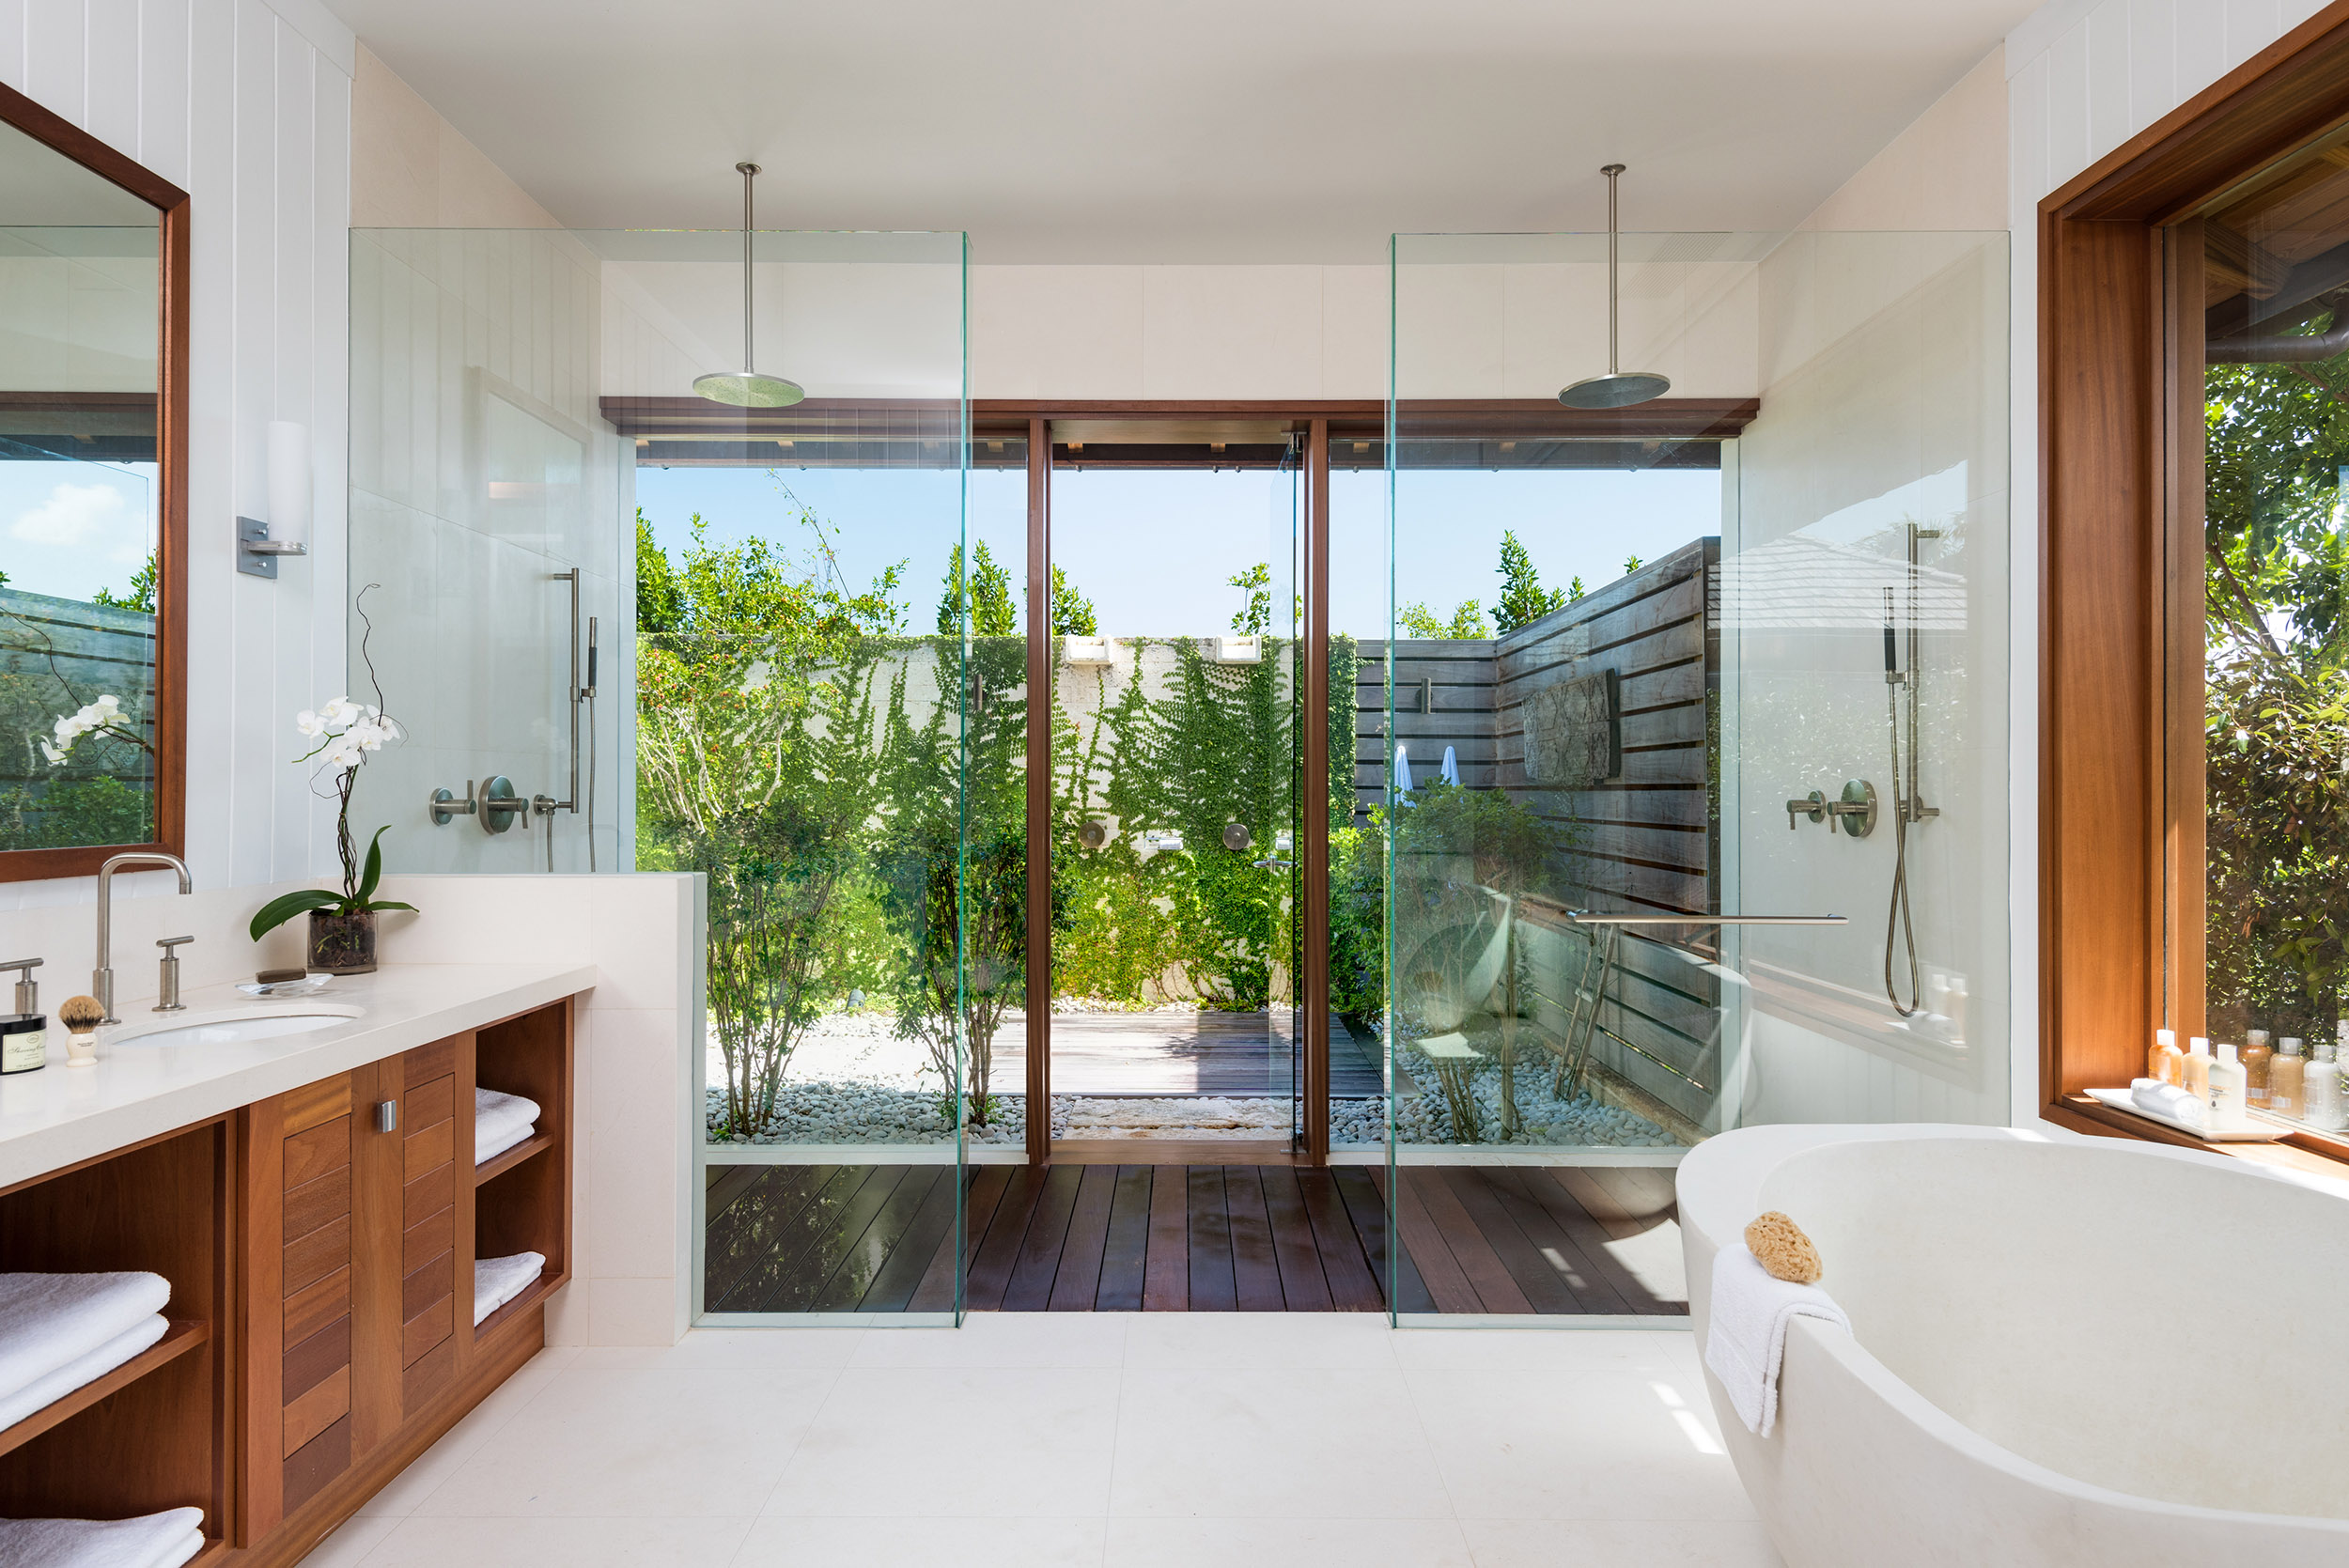 Serenity - view of one of the bathrooms with outdoor bathroom area beyond